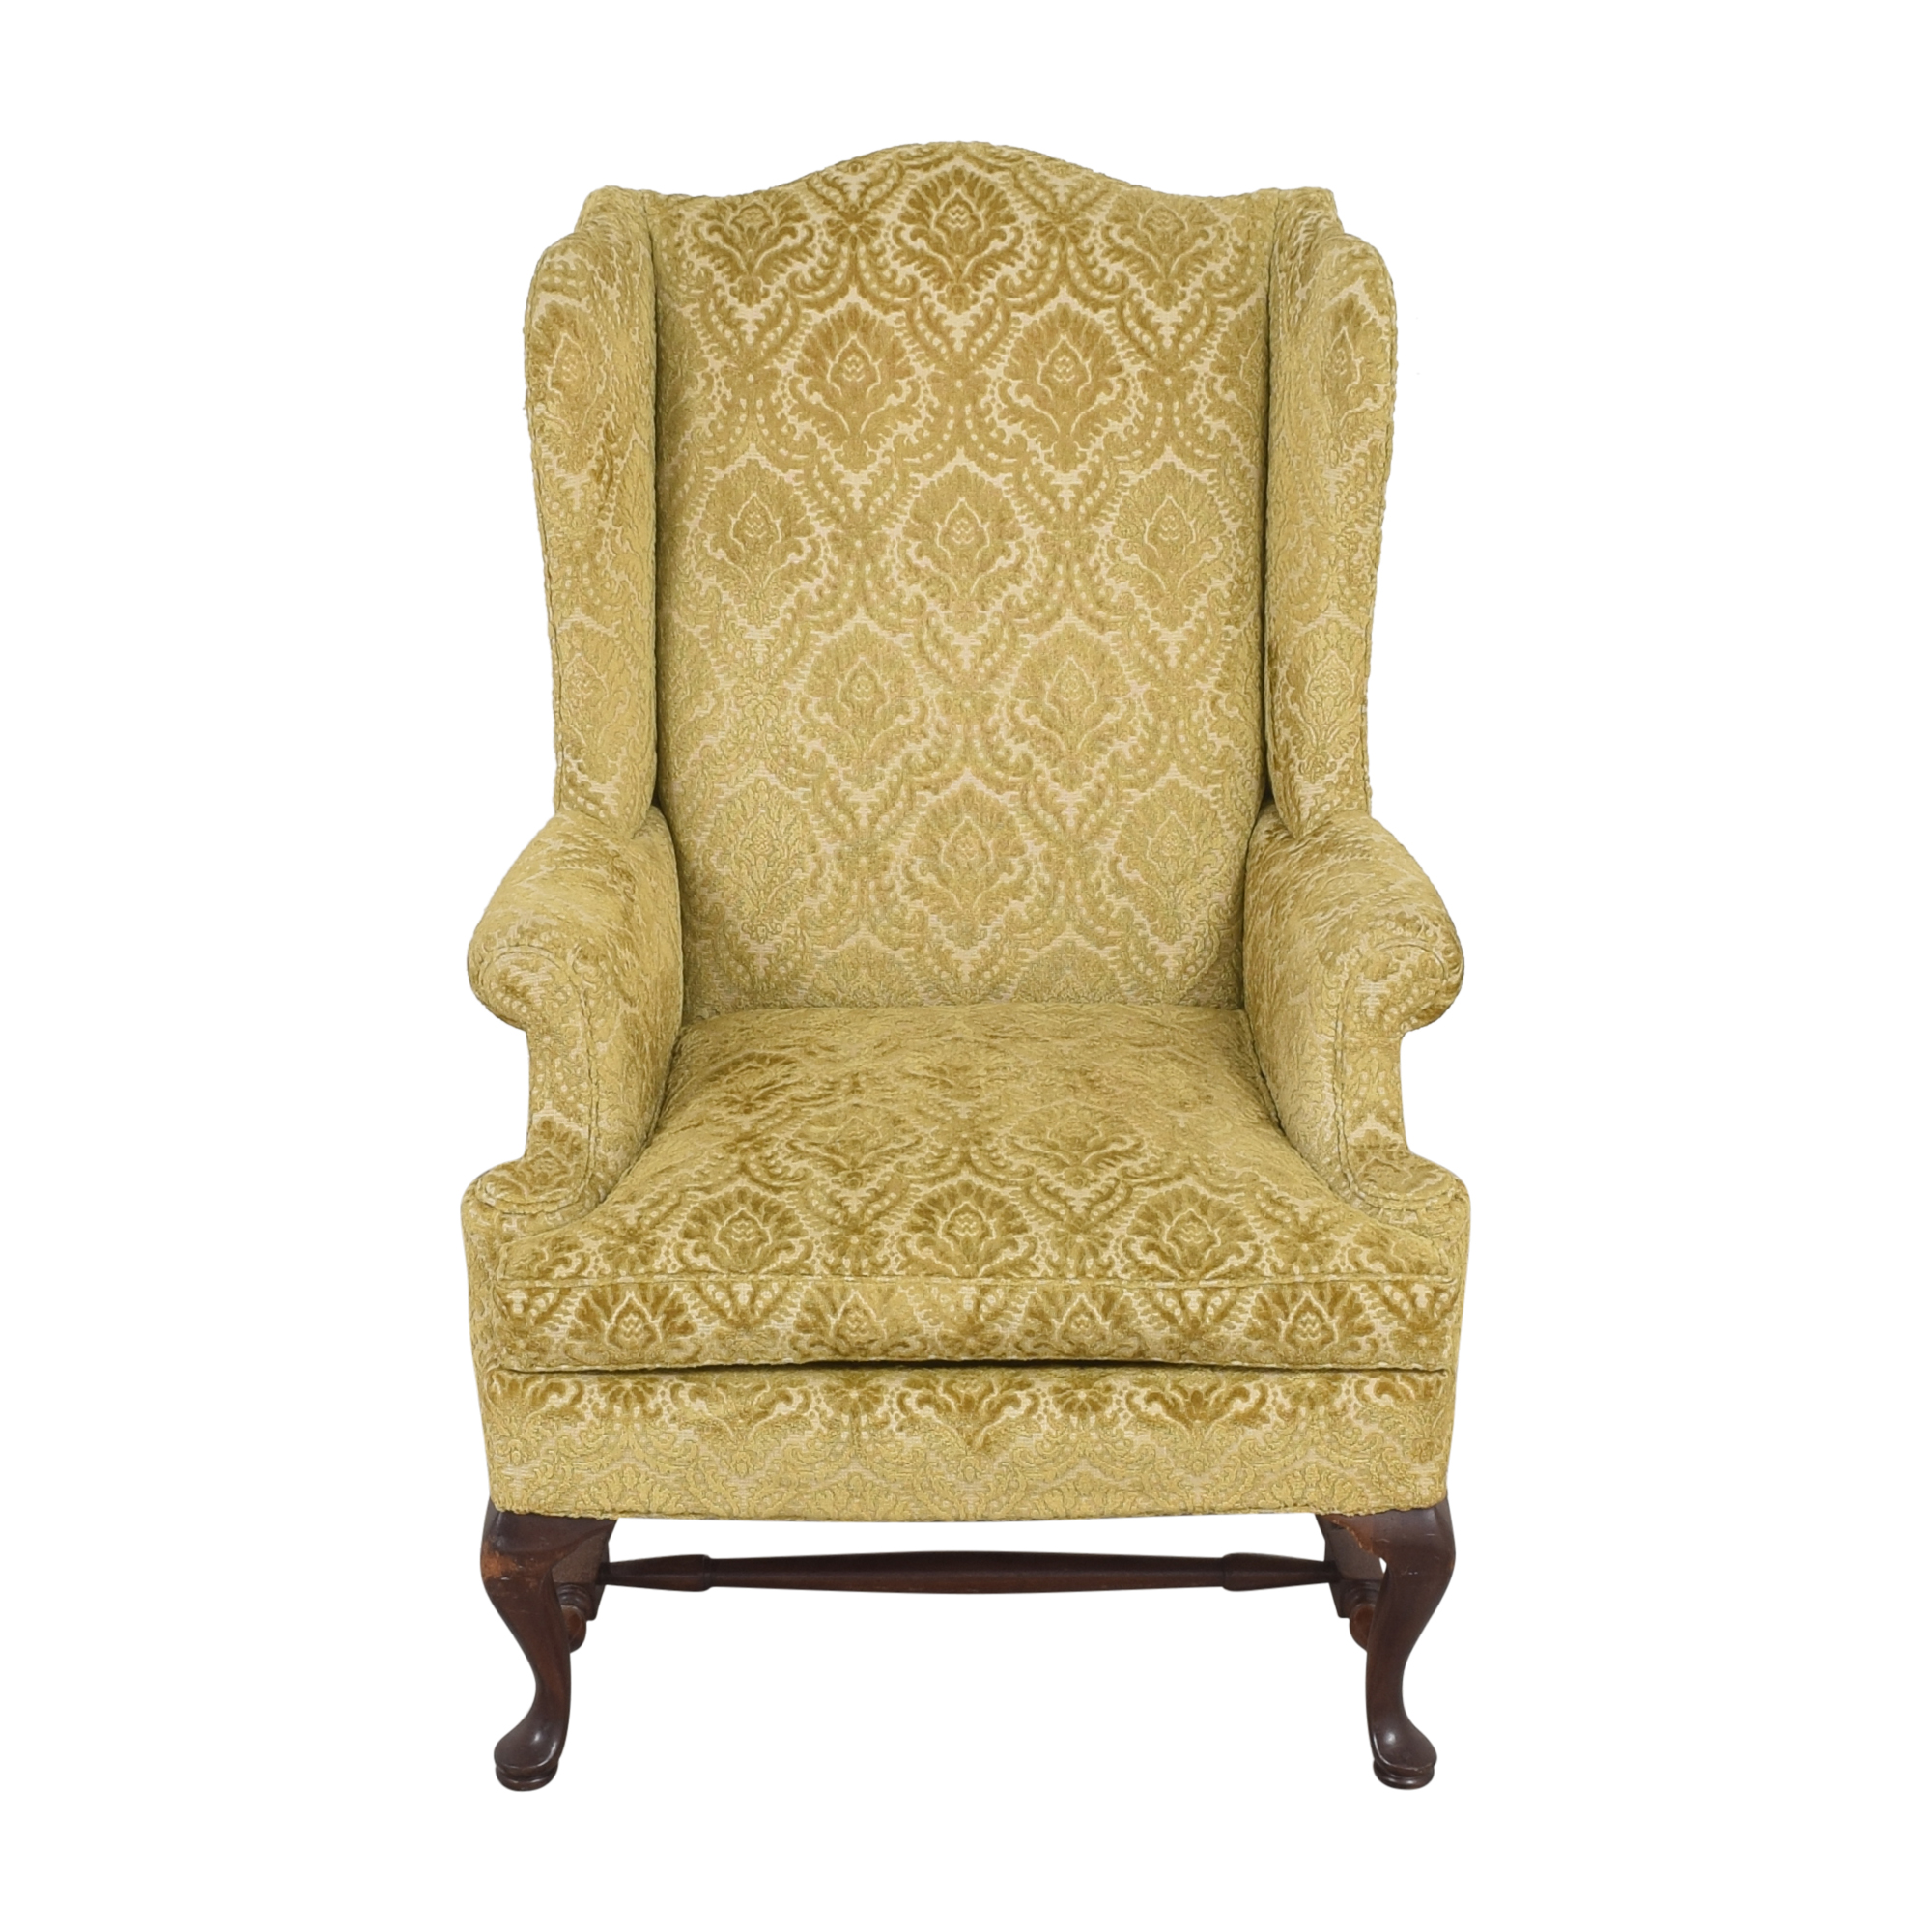 Hickory Chair Hickory Chair Queen Anne Wing Back Chair price